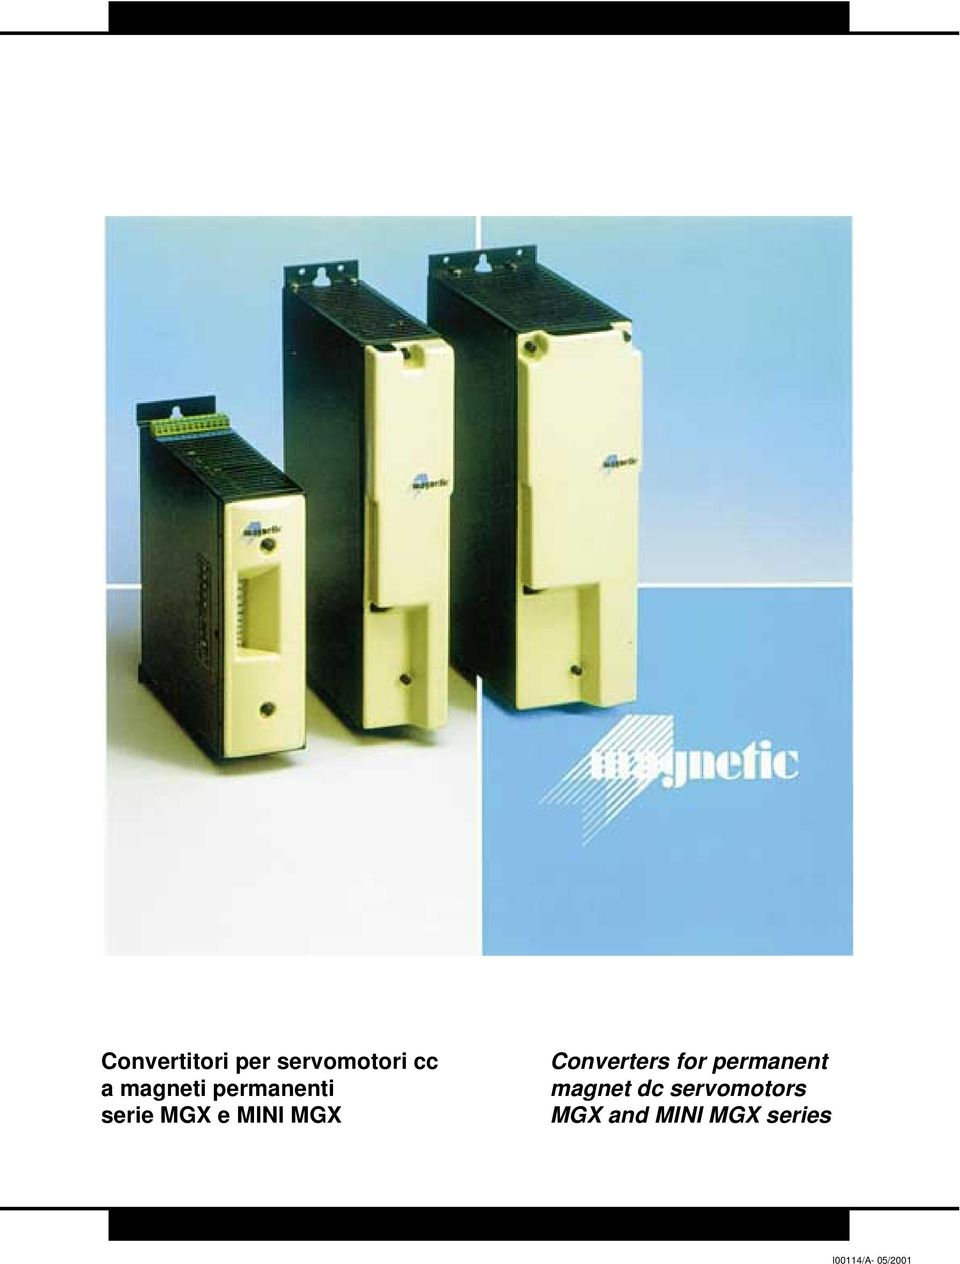 Converters for permanent magnet dc